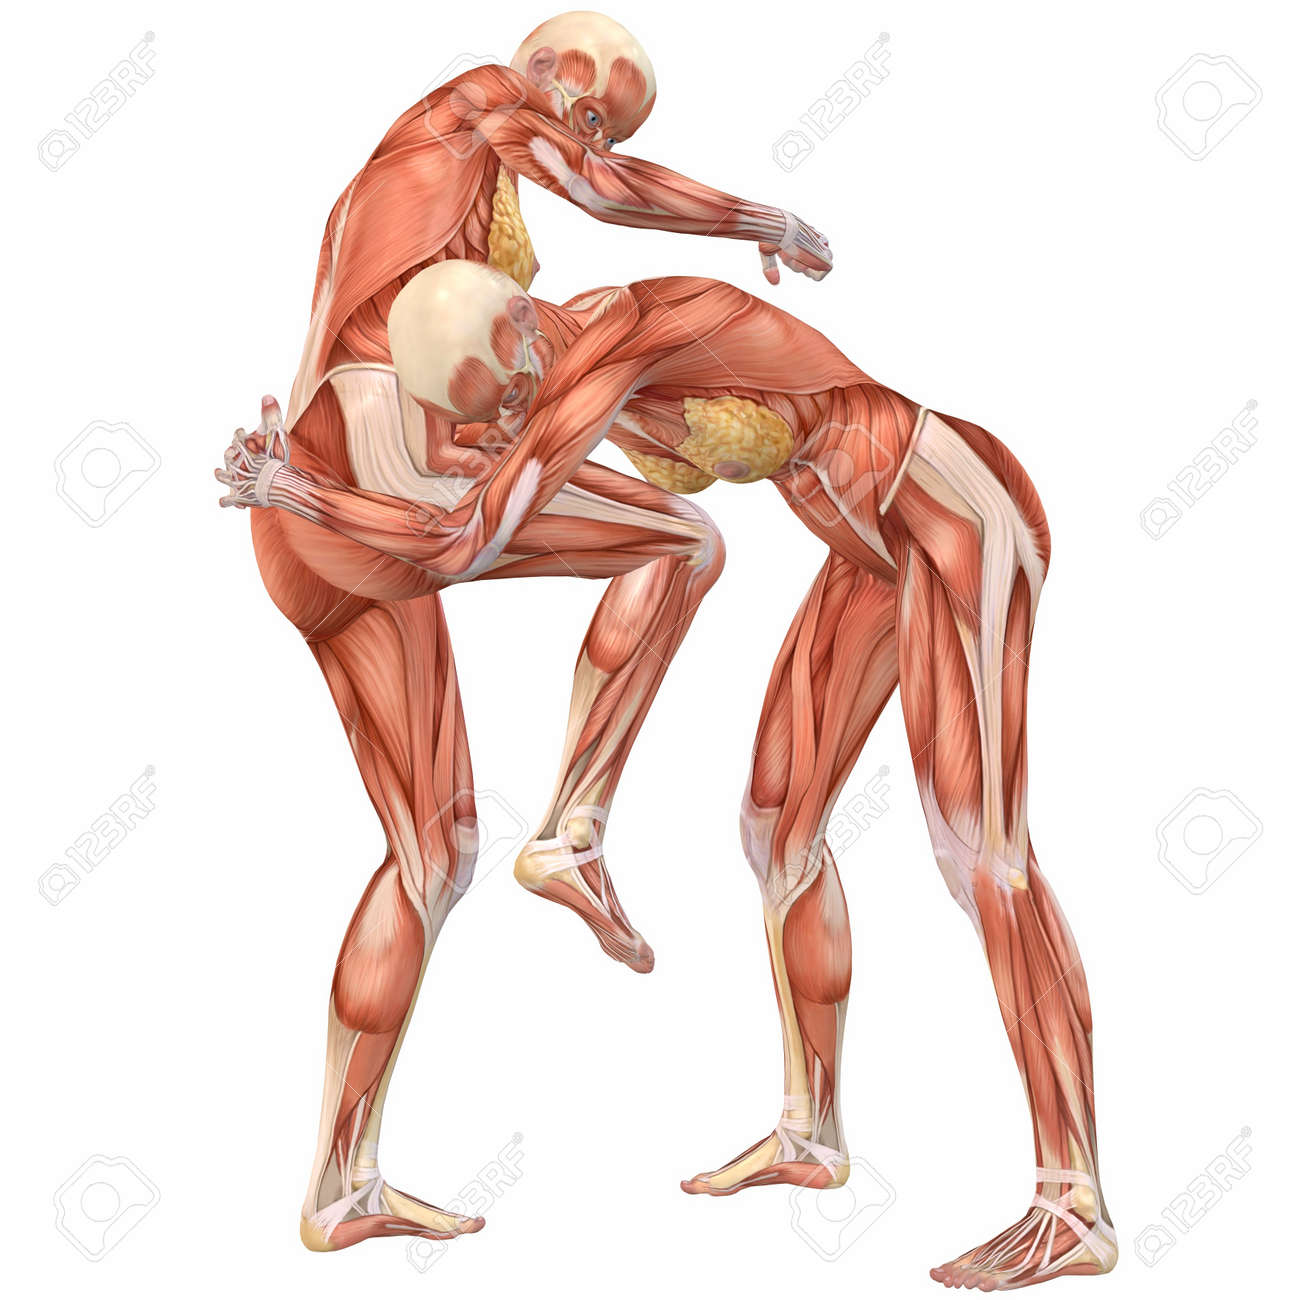 Female Human Body Anatomy Street Fight Stock Photo Picture And